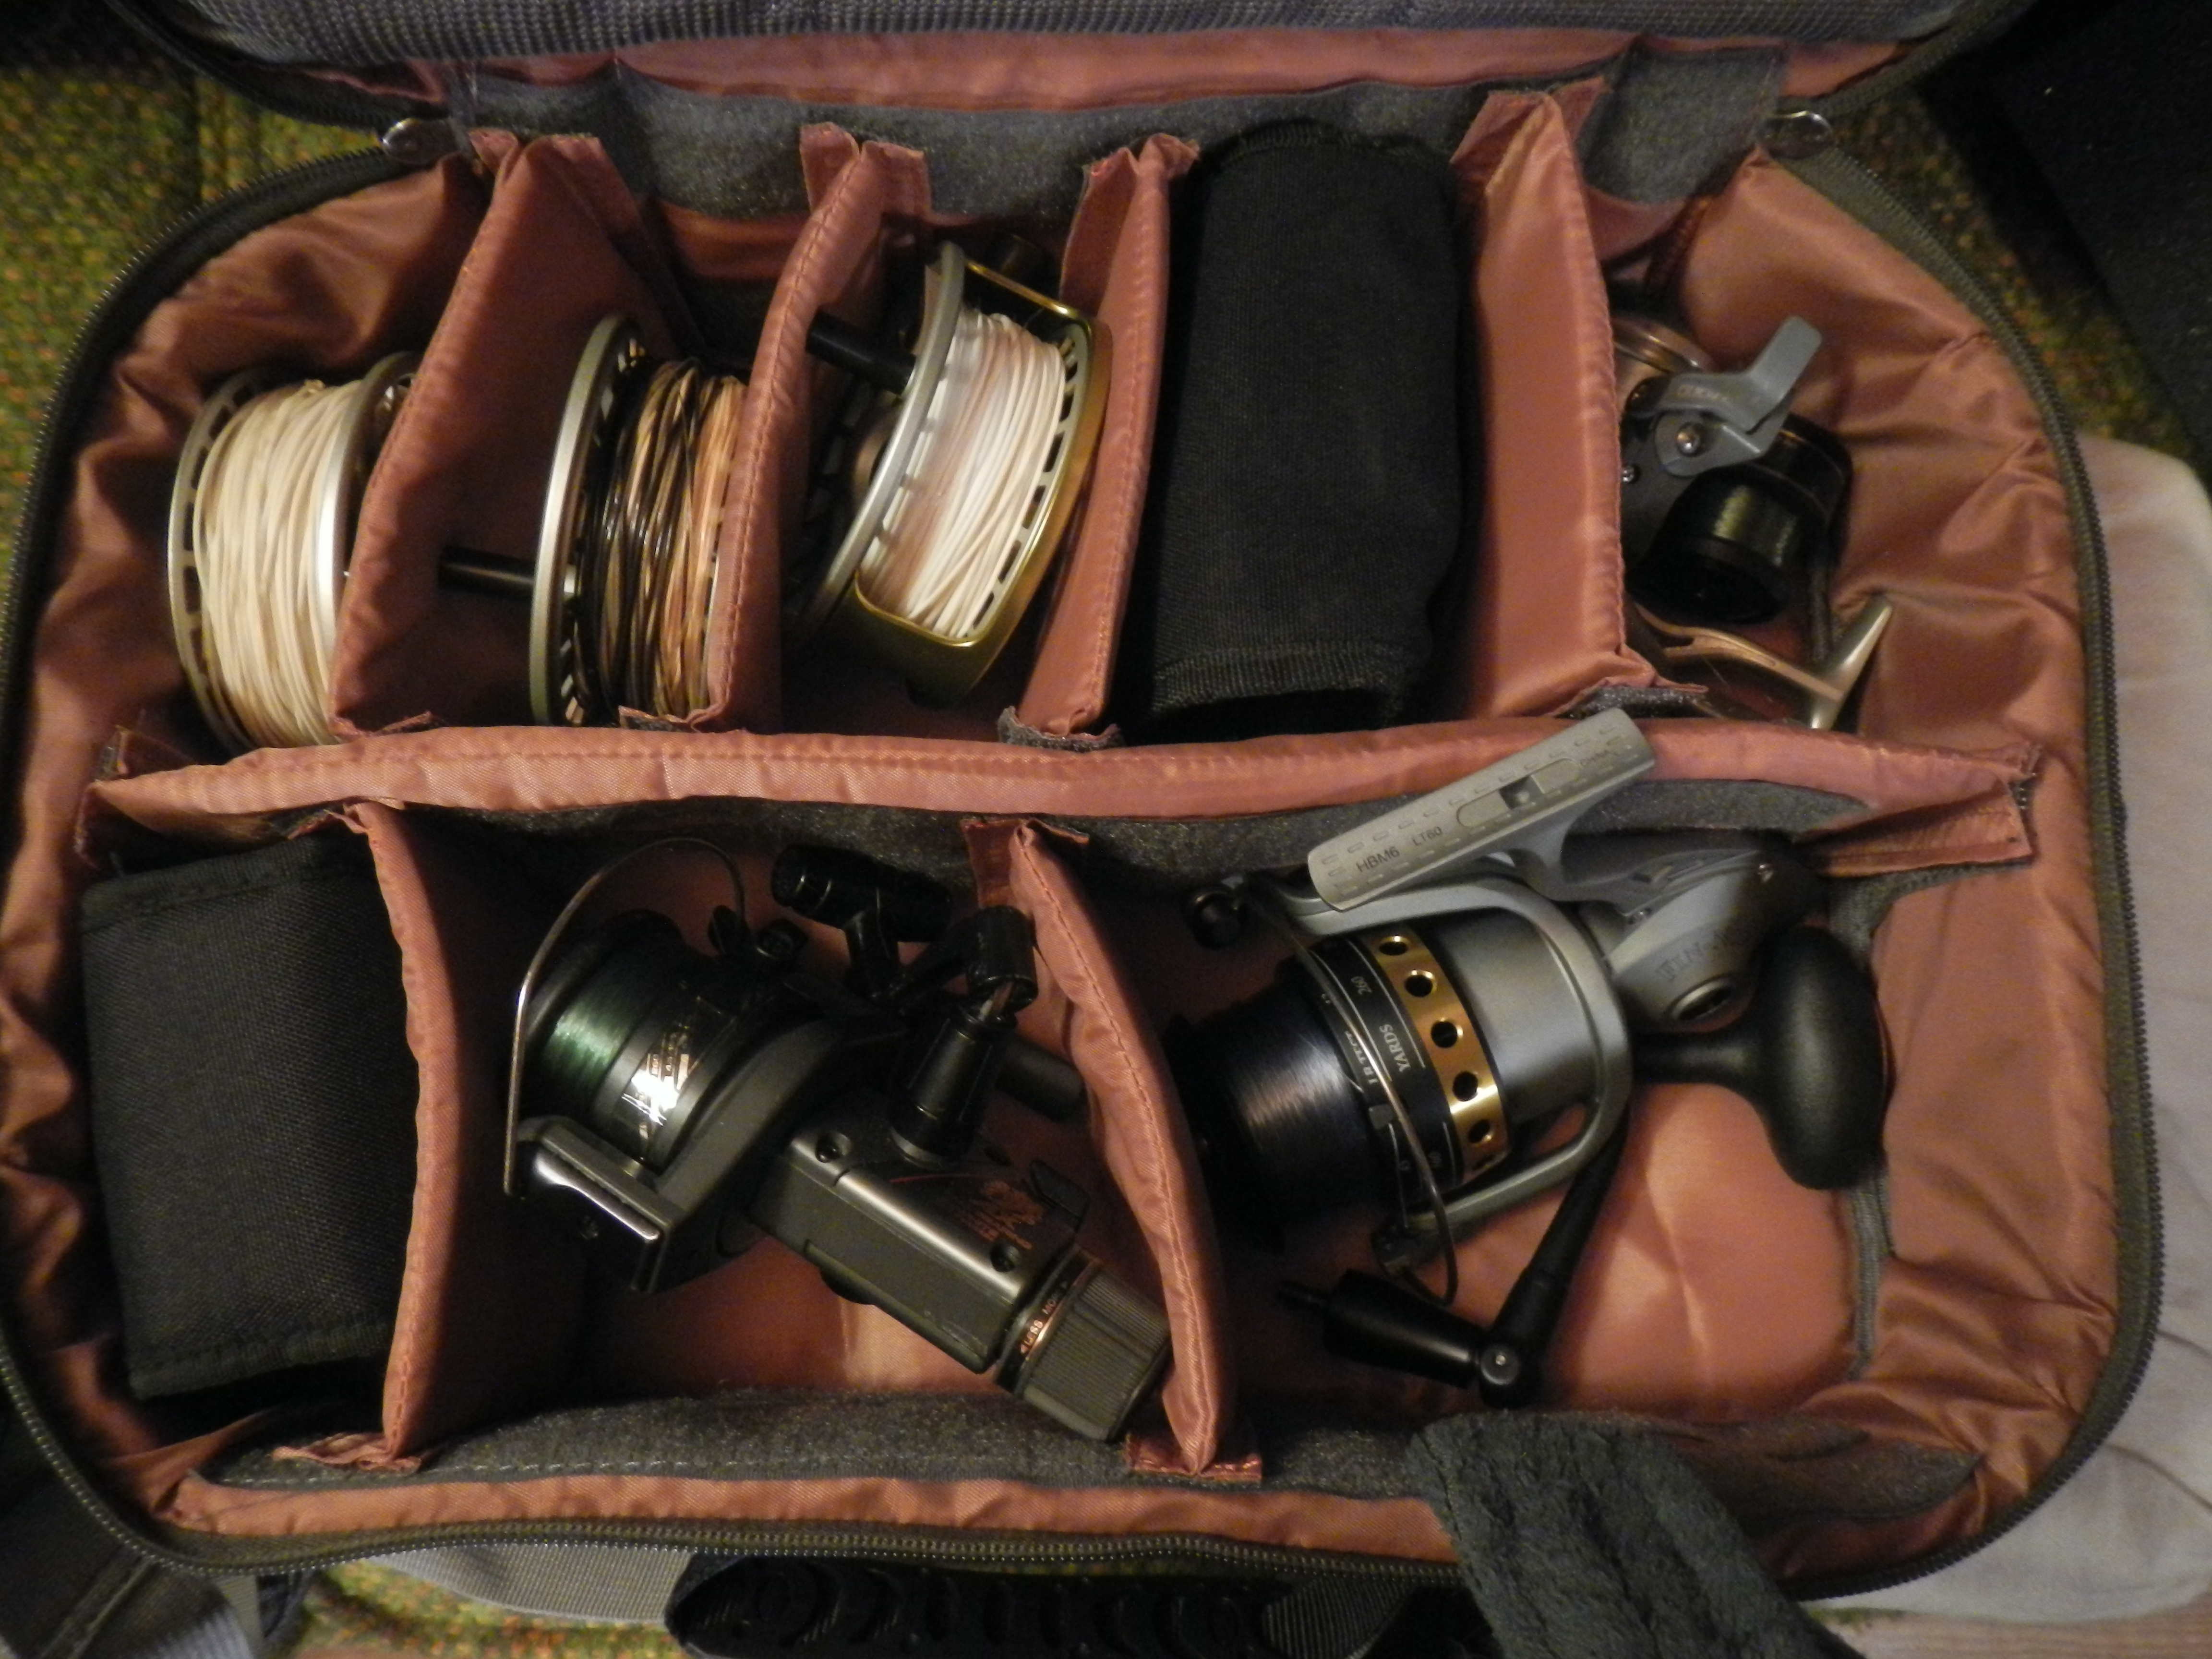 New reel case - YES there are spinning reels in there but despair not...